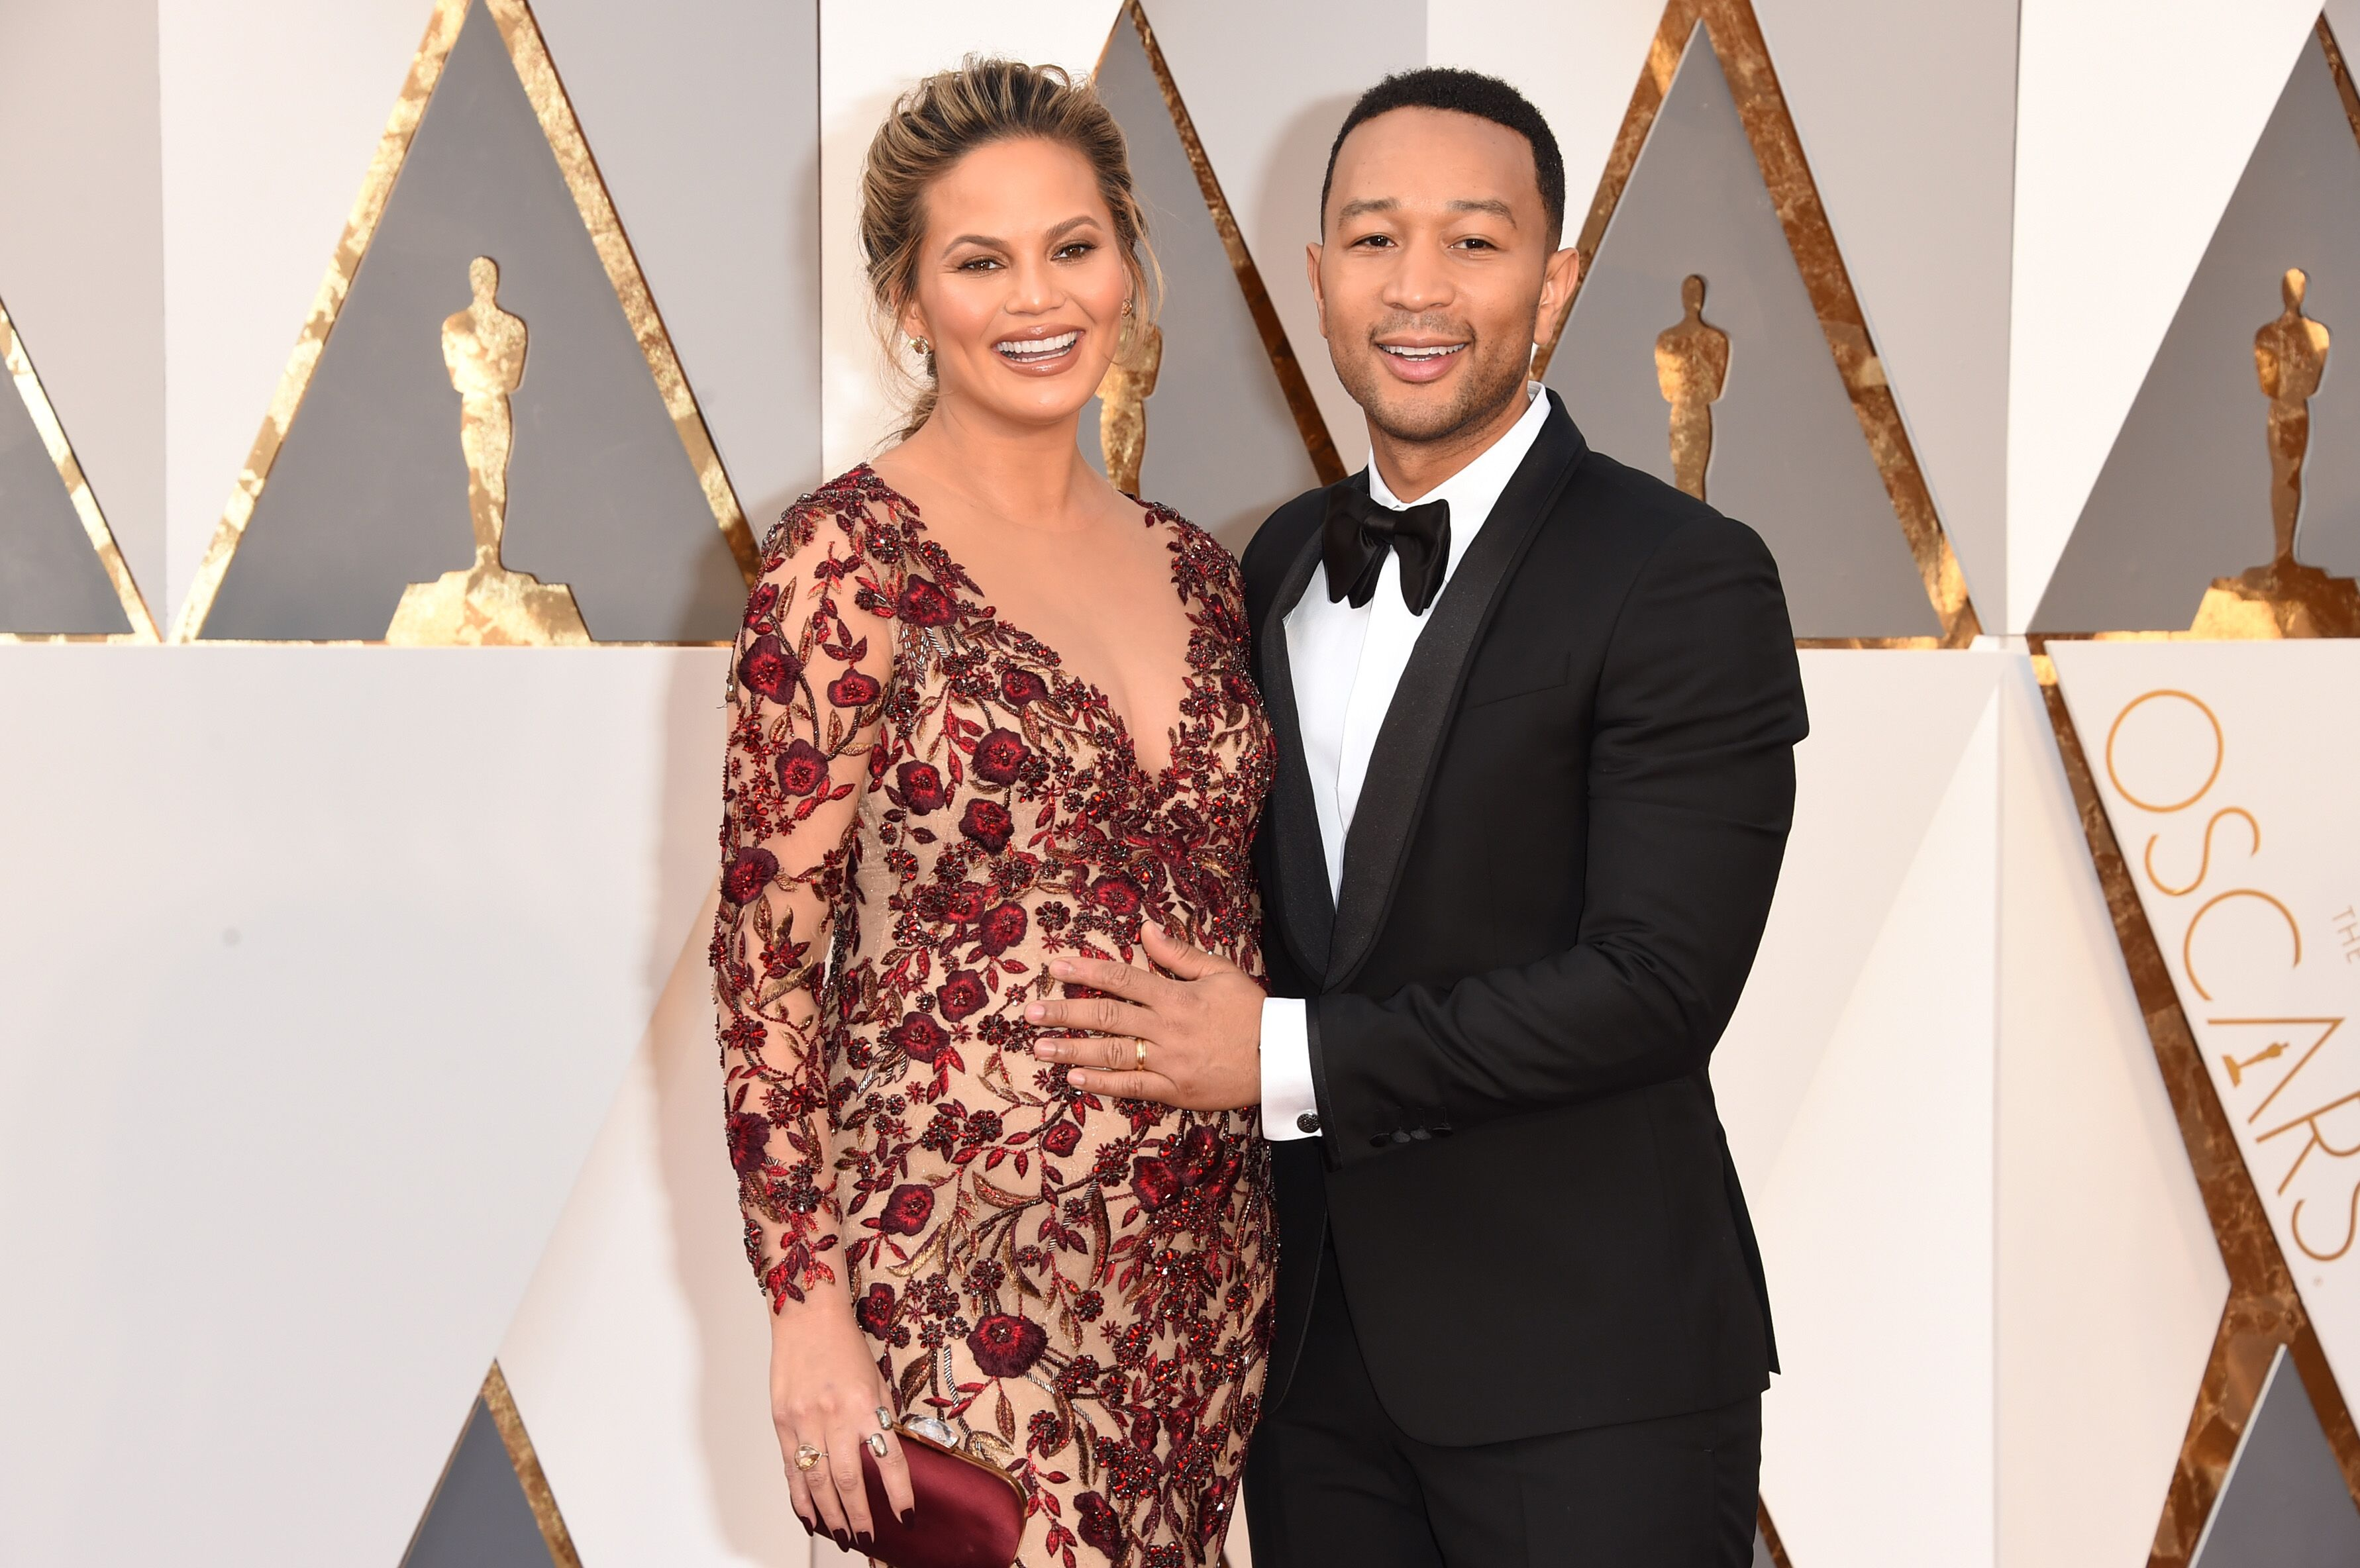 Chrissy Teigen and John Legend attend the 88th Annual Academy Awards. | Source: Getty Images